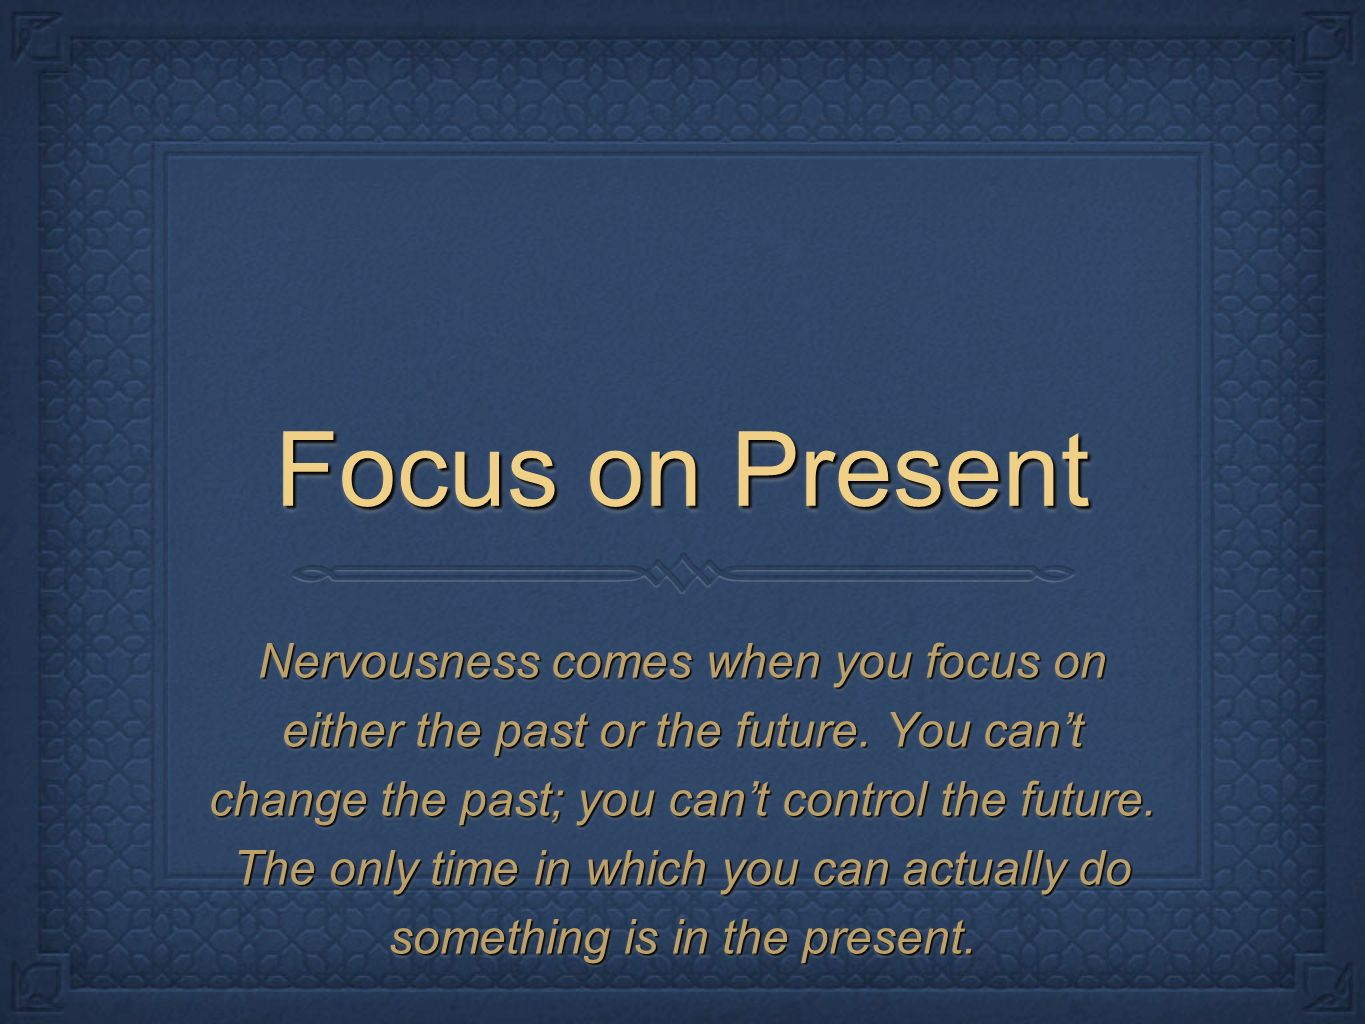 Focus on Present Nervousness comes when you focus on either the past or the future.